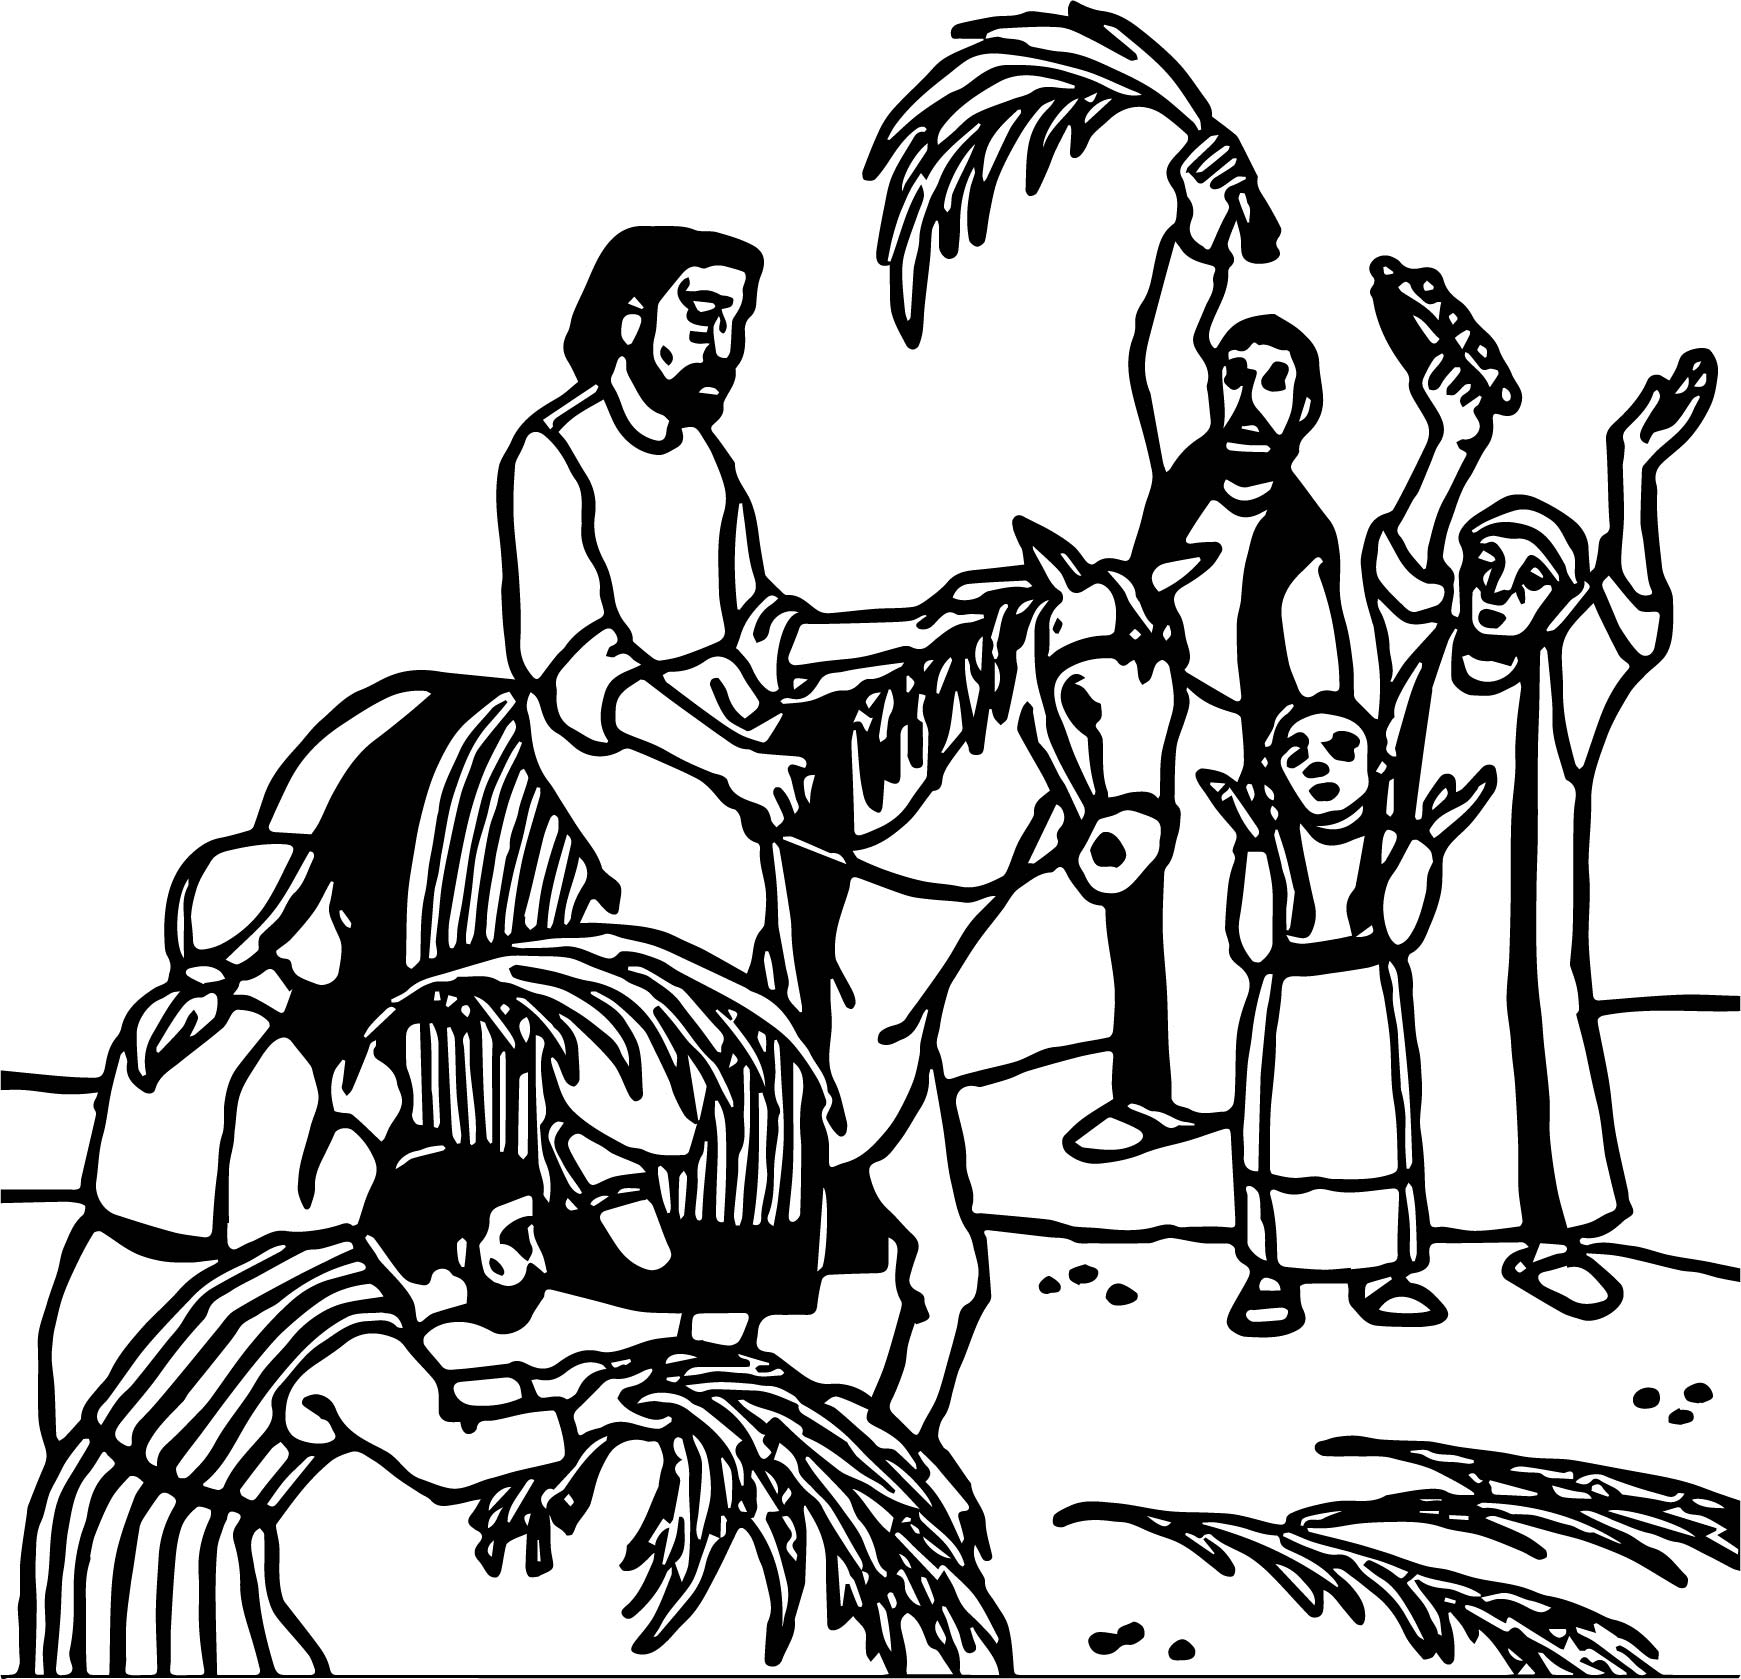 Passion Palm Sunday Projection Coloring Page | Wecoloringpage.com